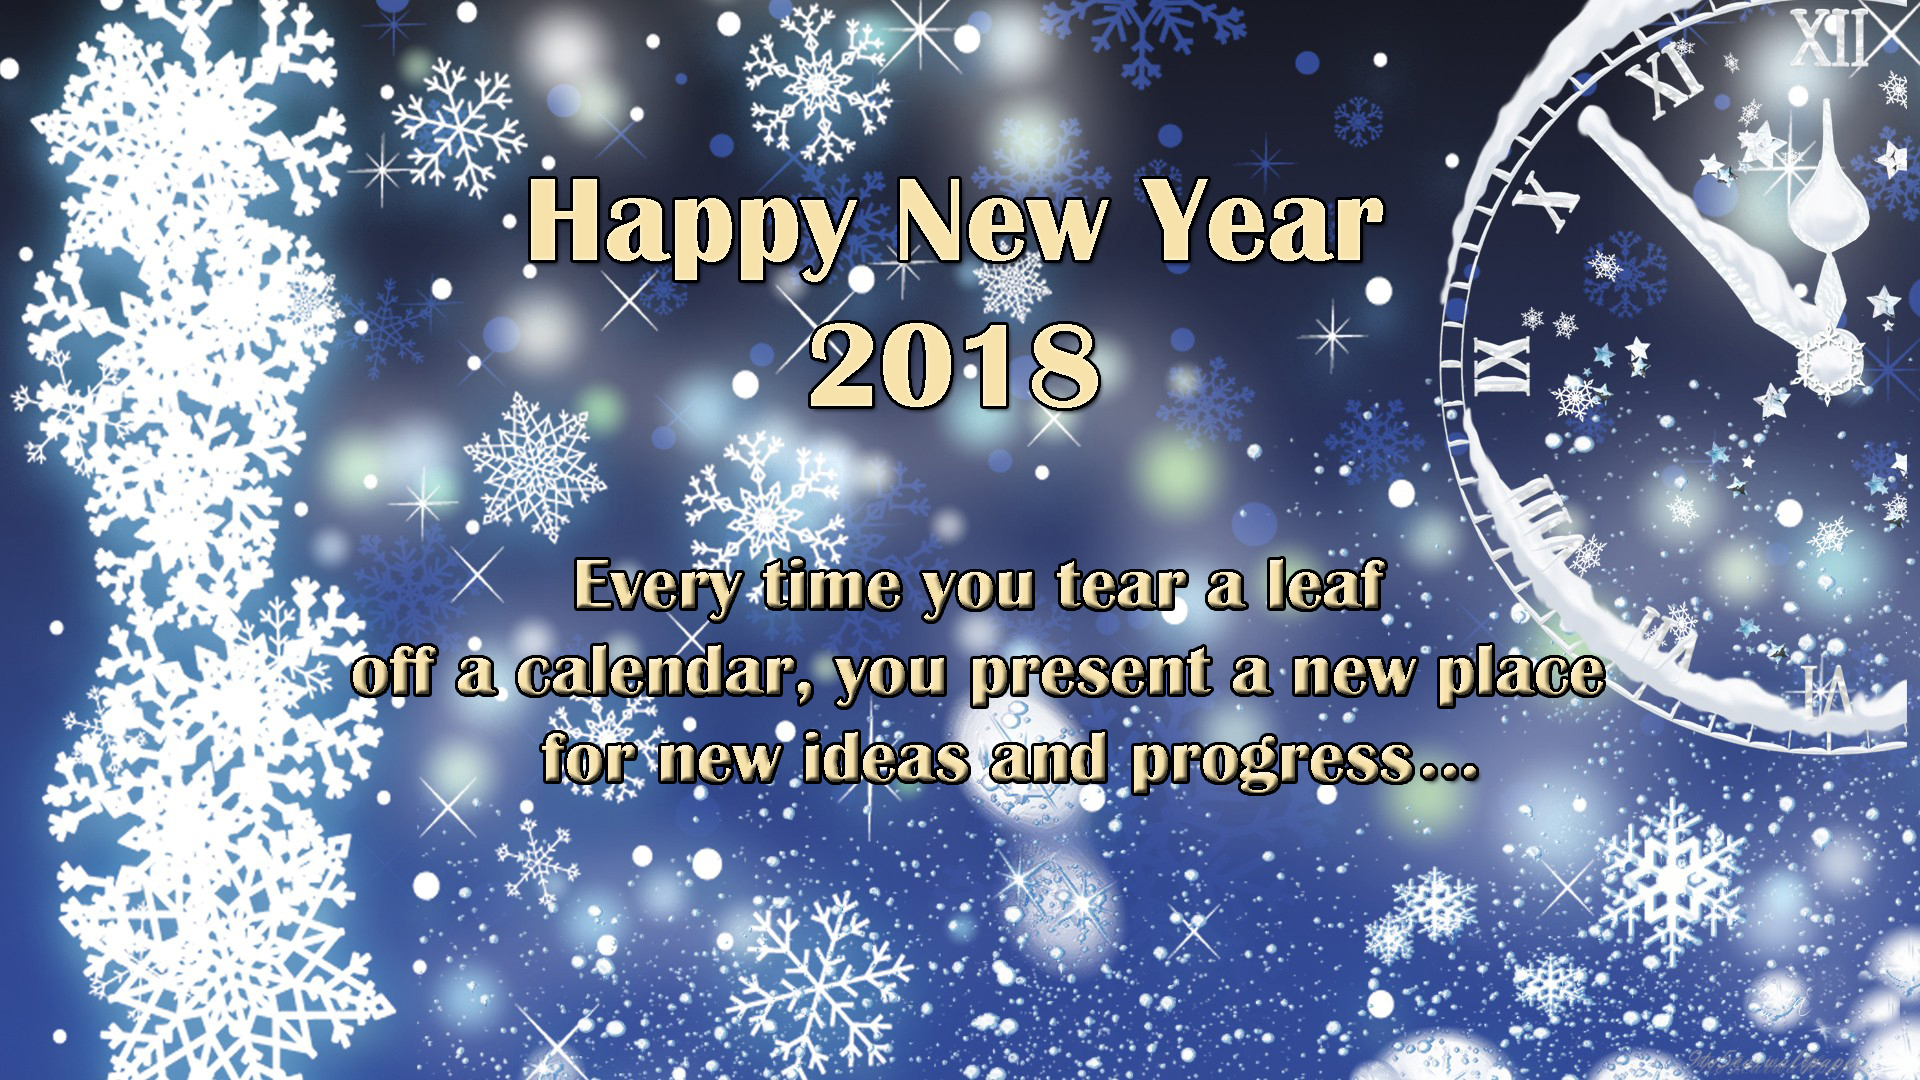 happ-new-year-quotes-wishes-images-2018